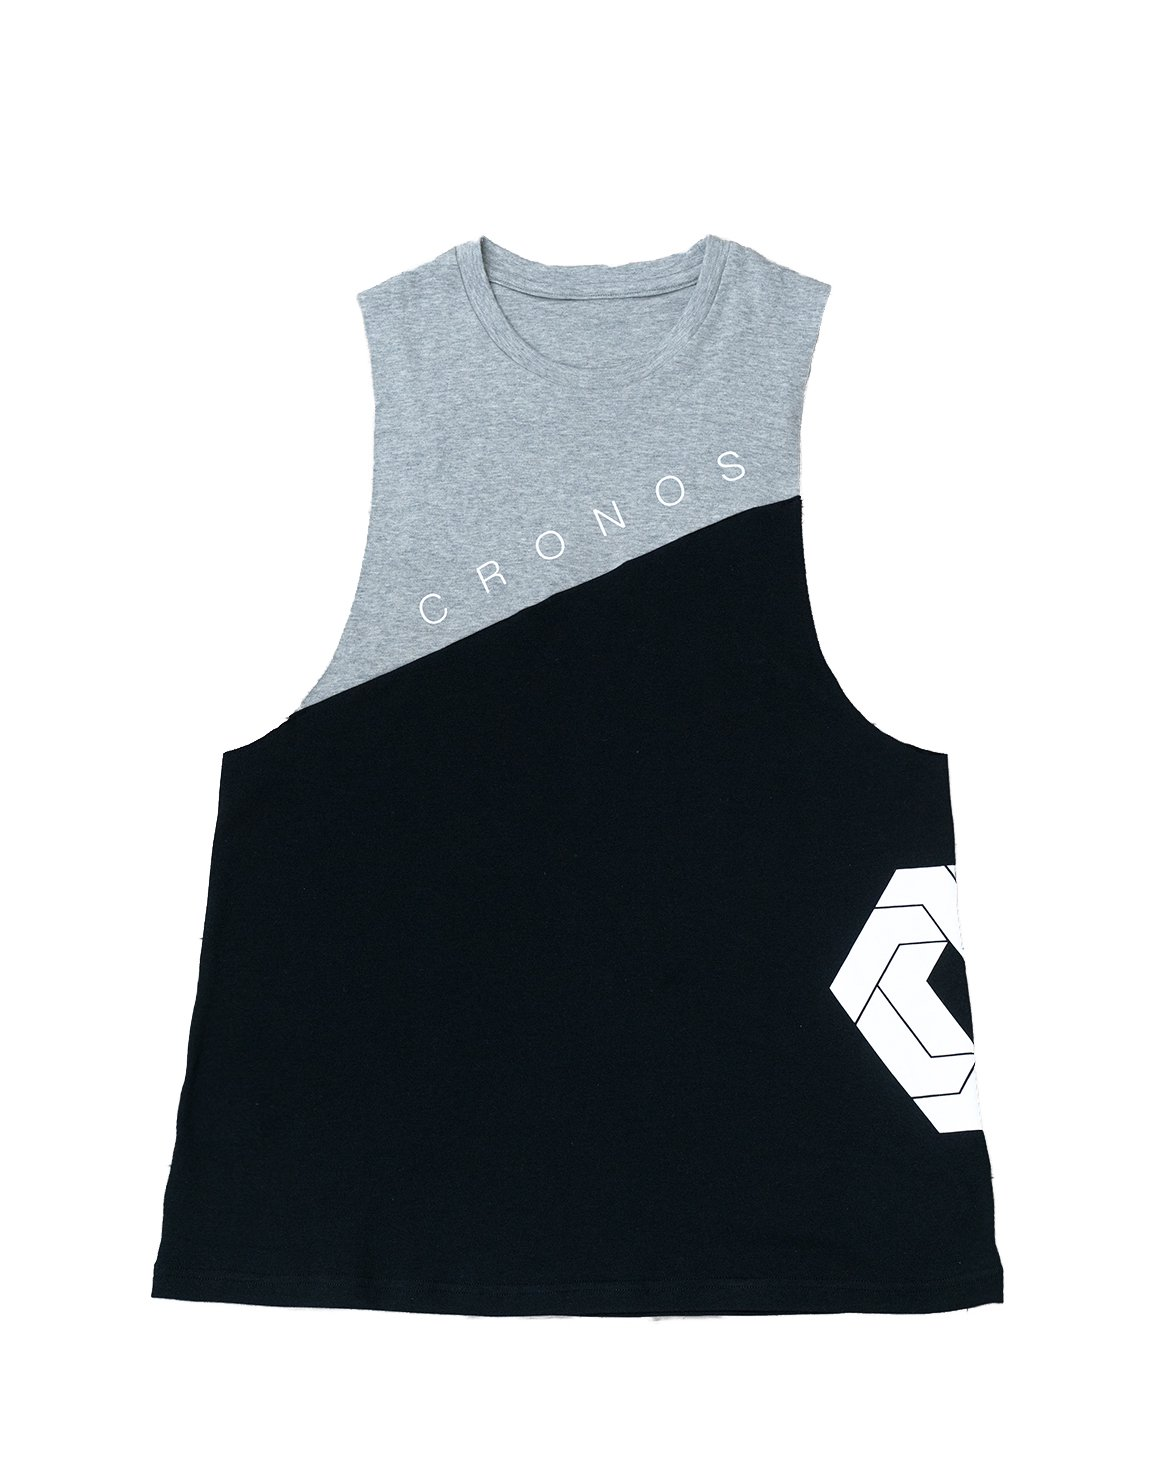 <img class='new_mark_img1' src='https://img.shop-pro.jp/img/new/icons55.gif' style='border:none;display:inline;margin:0px;padding:0px;width:auto;' />CRONOS NEW Bi-COLOR TANK TOP【BLACK×GRAY】